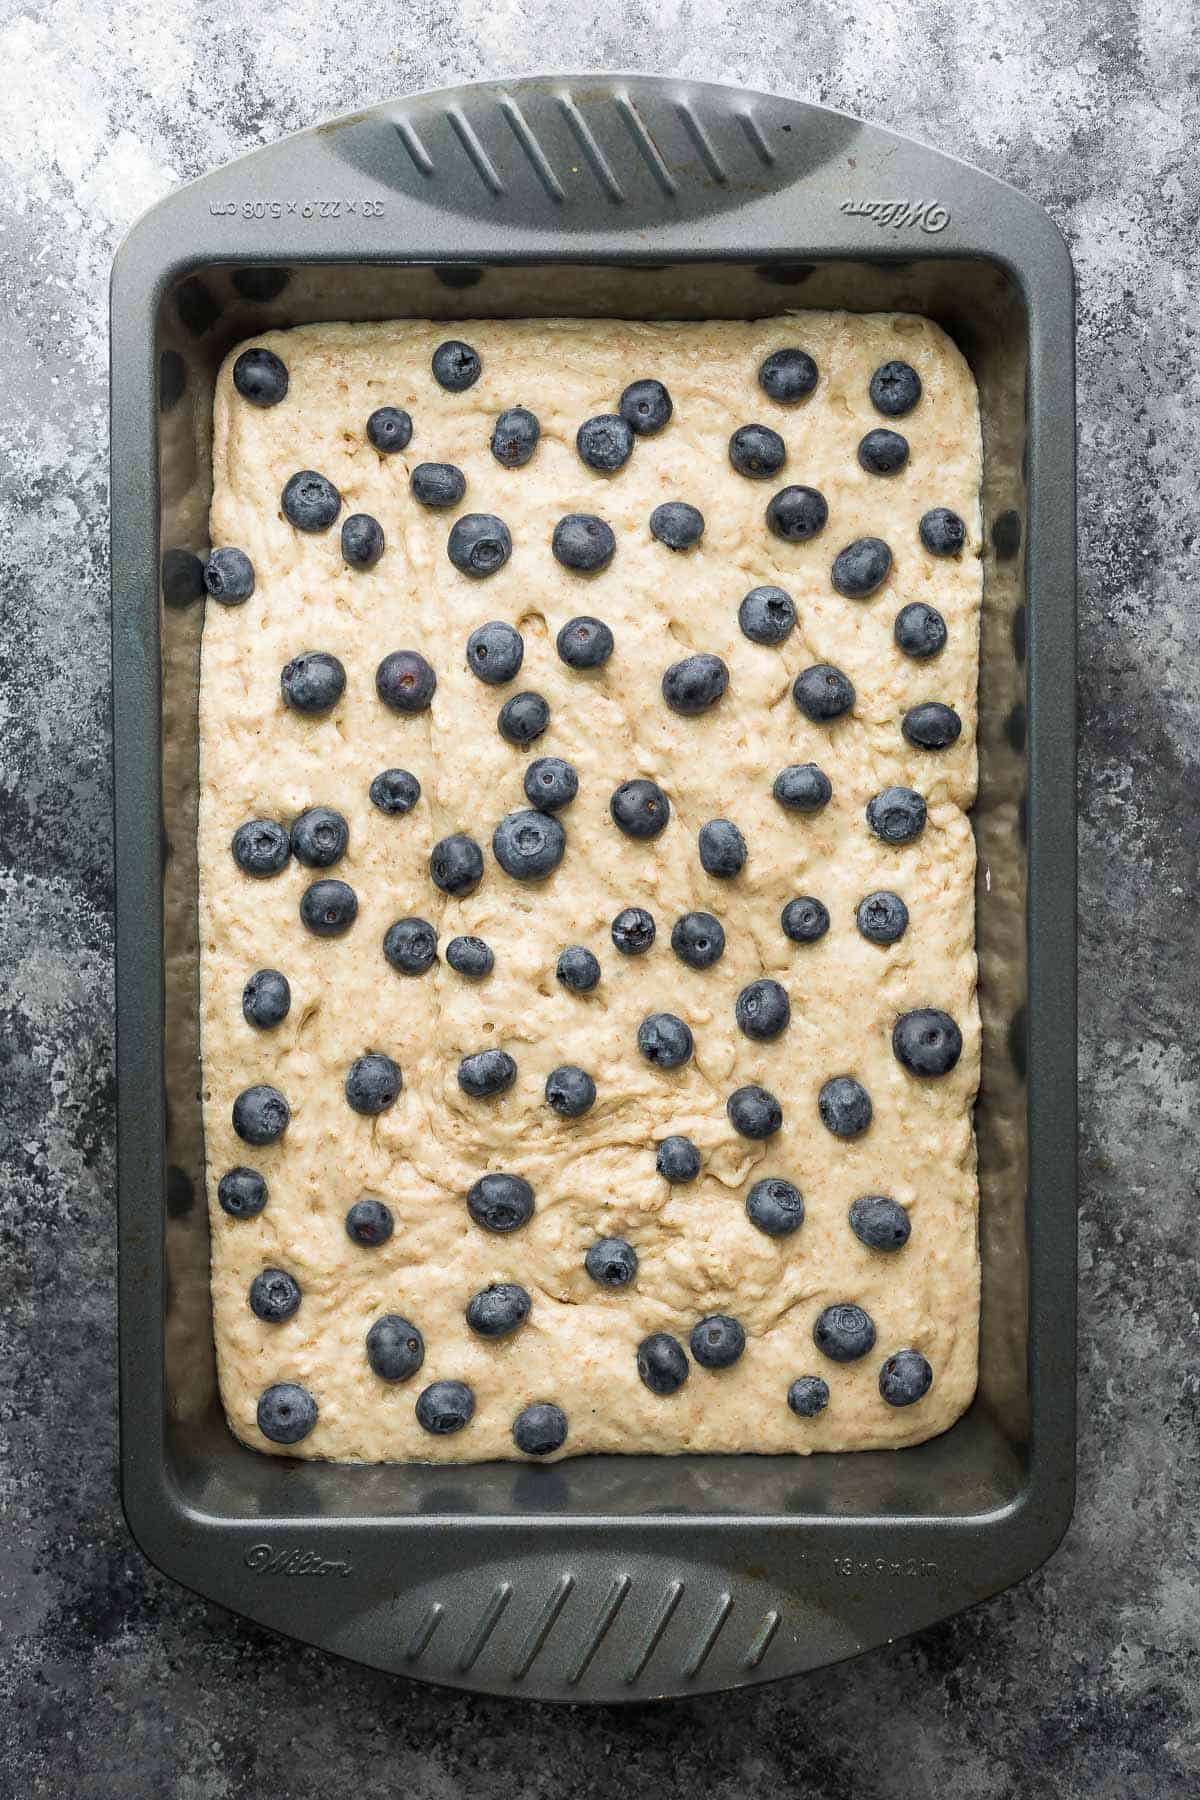 protein powder pancake batter with blueberries in a pan before baking